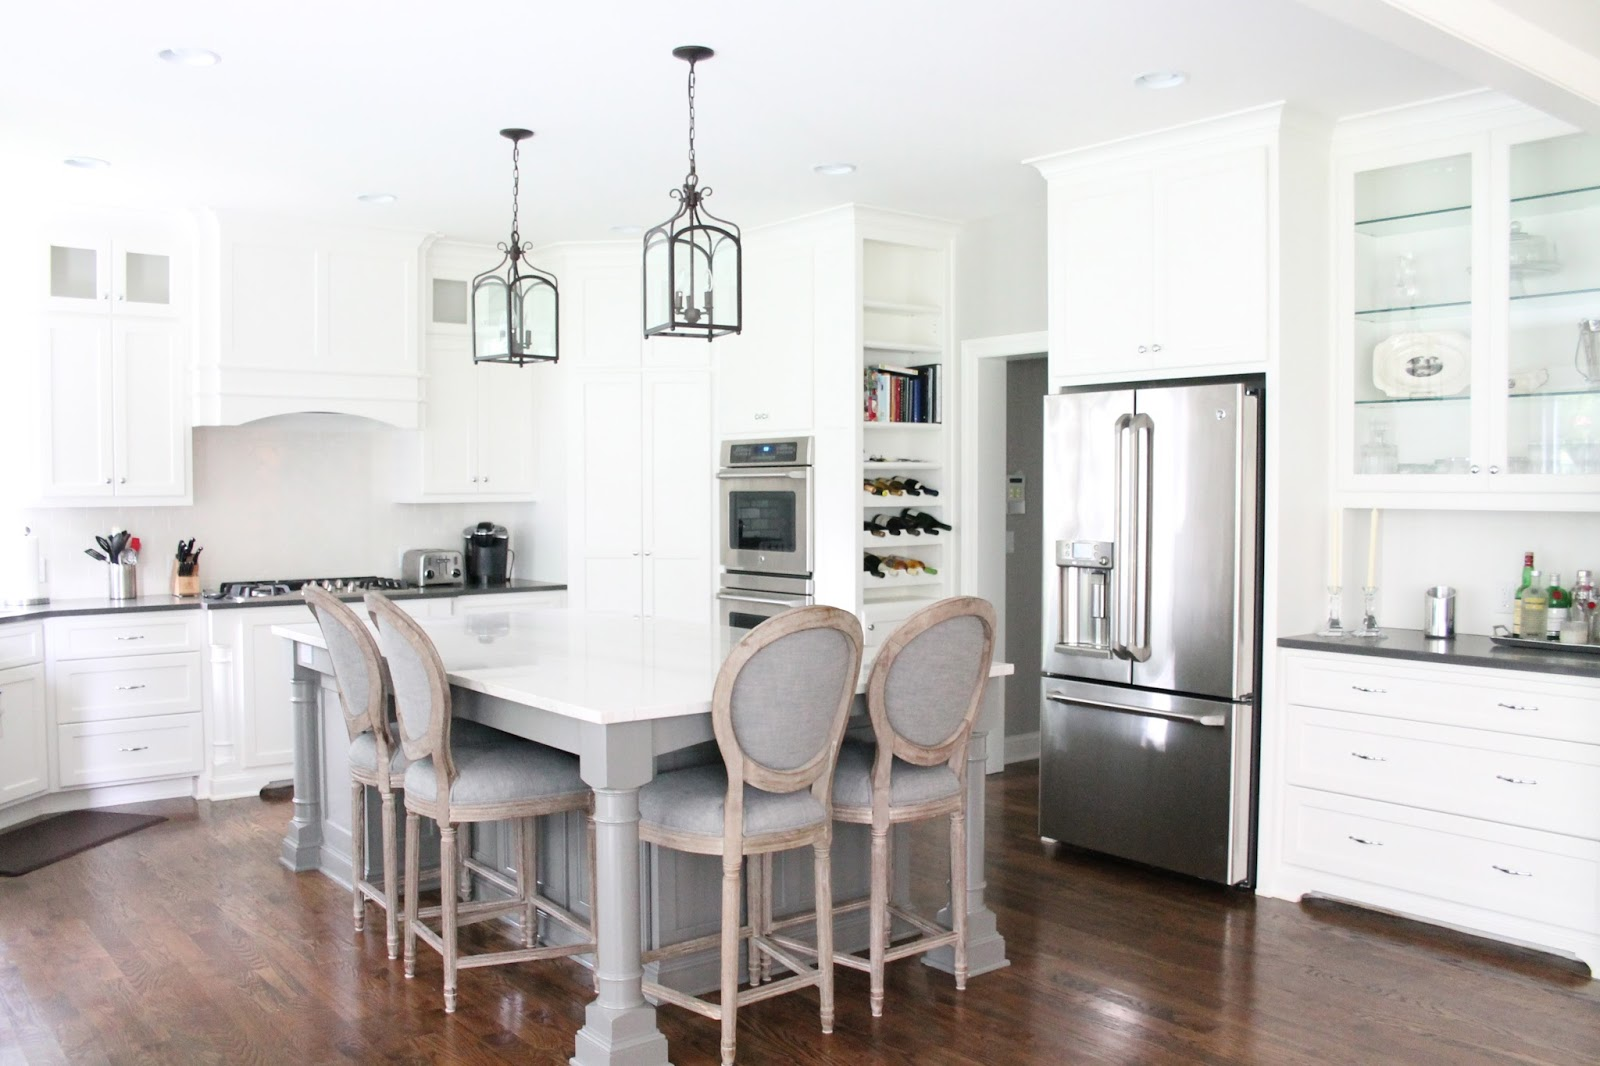 A New Cape Cod With A Kitchen Dreams Are Made Of